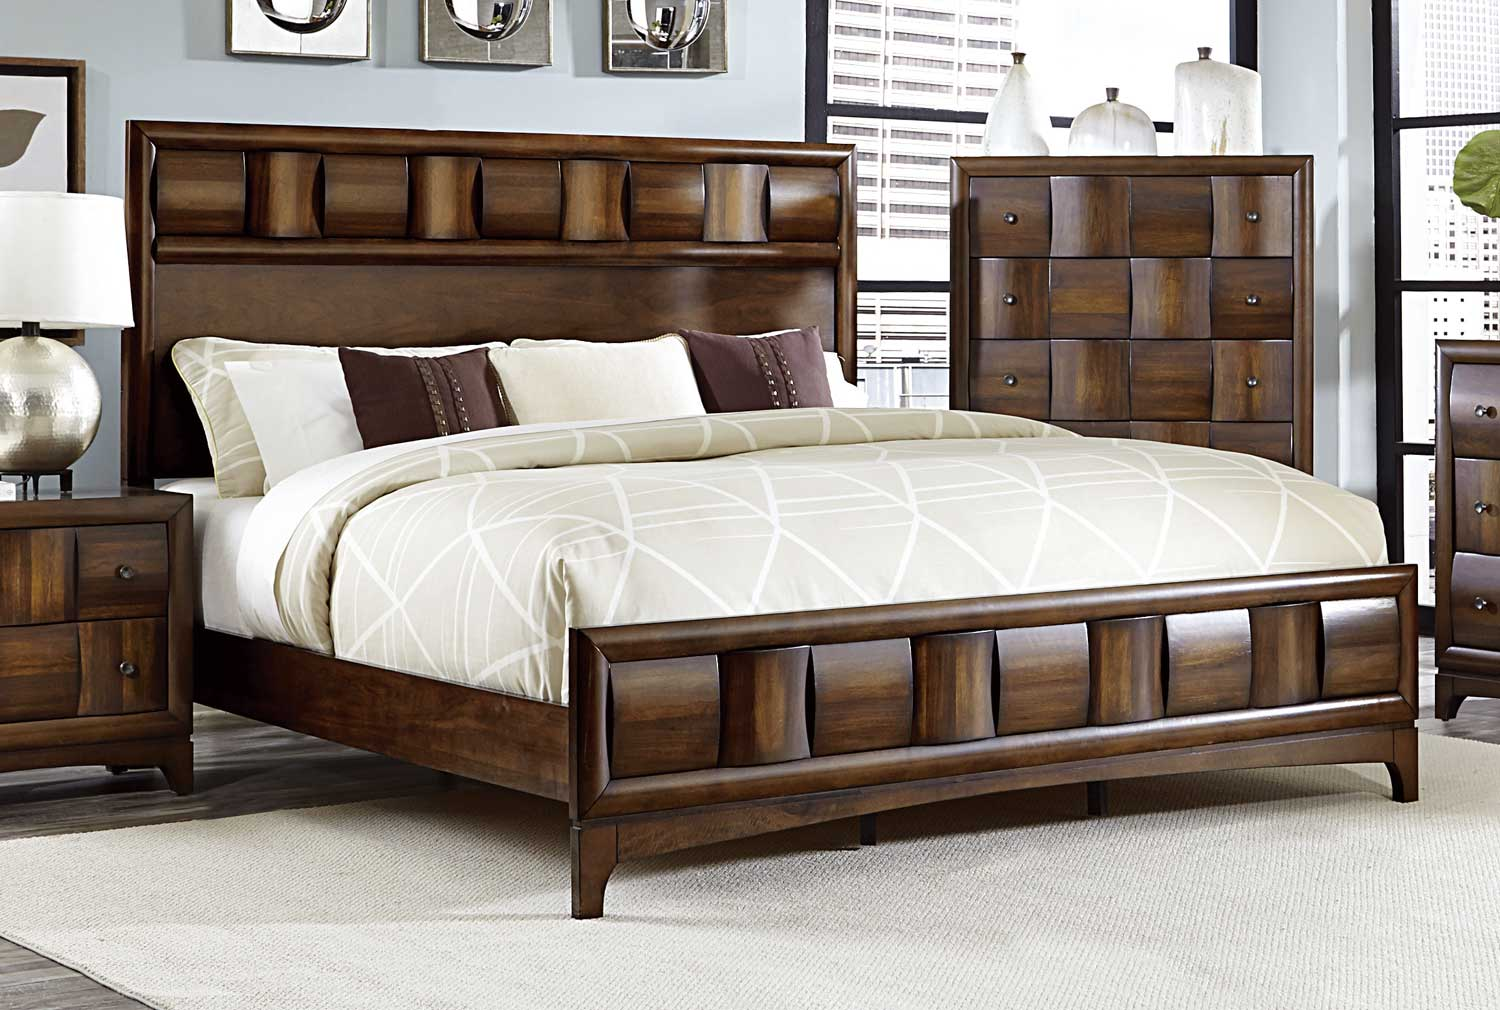 Homelegance Porter Bed Warm Walnut 1852 1